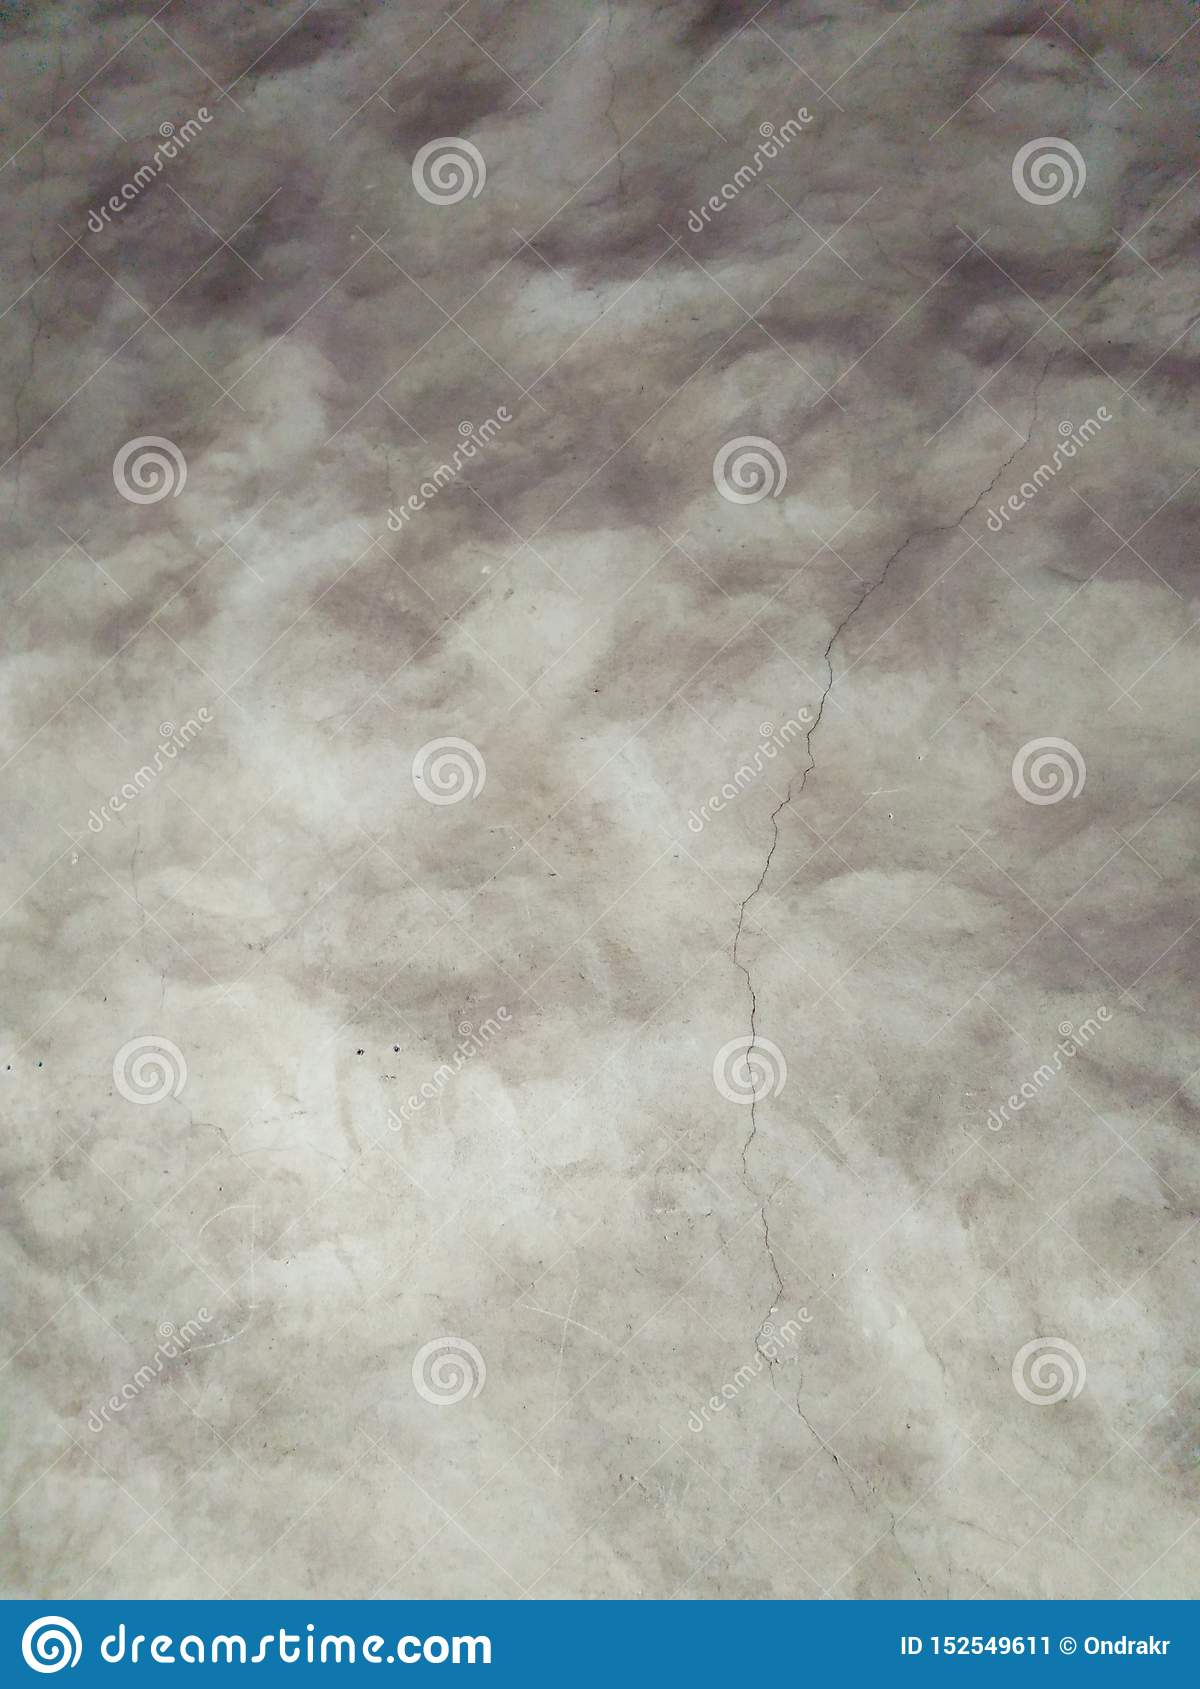 Abstract background grey mortar